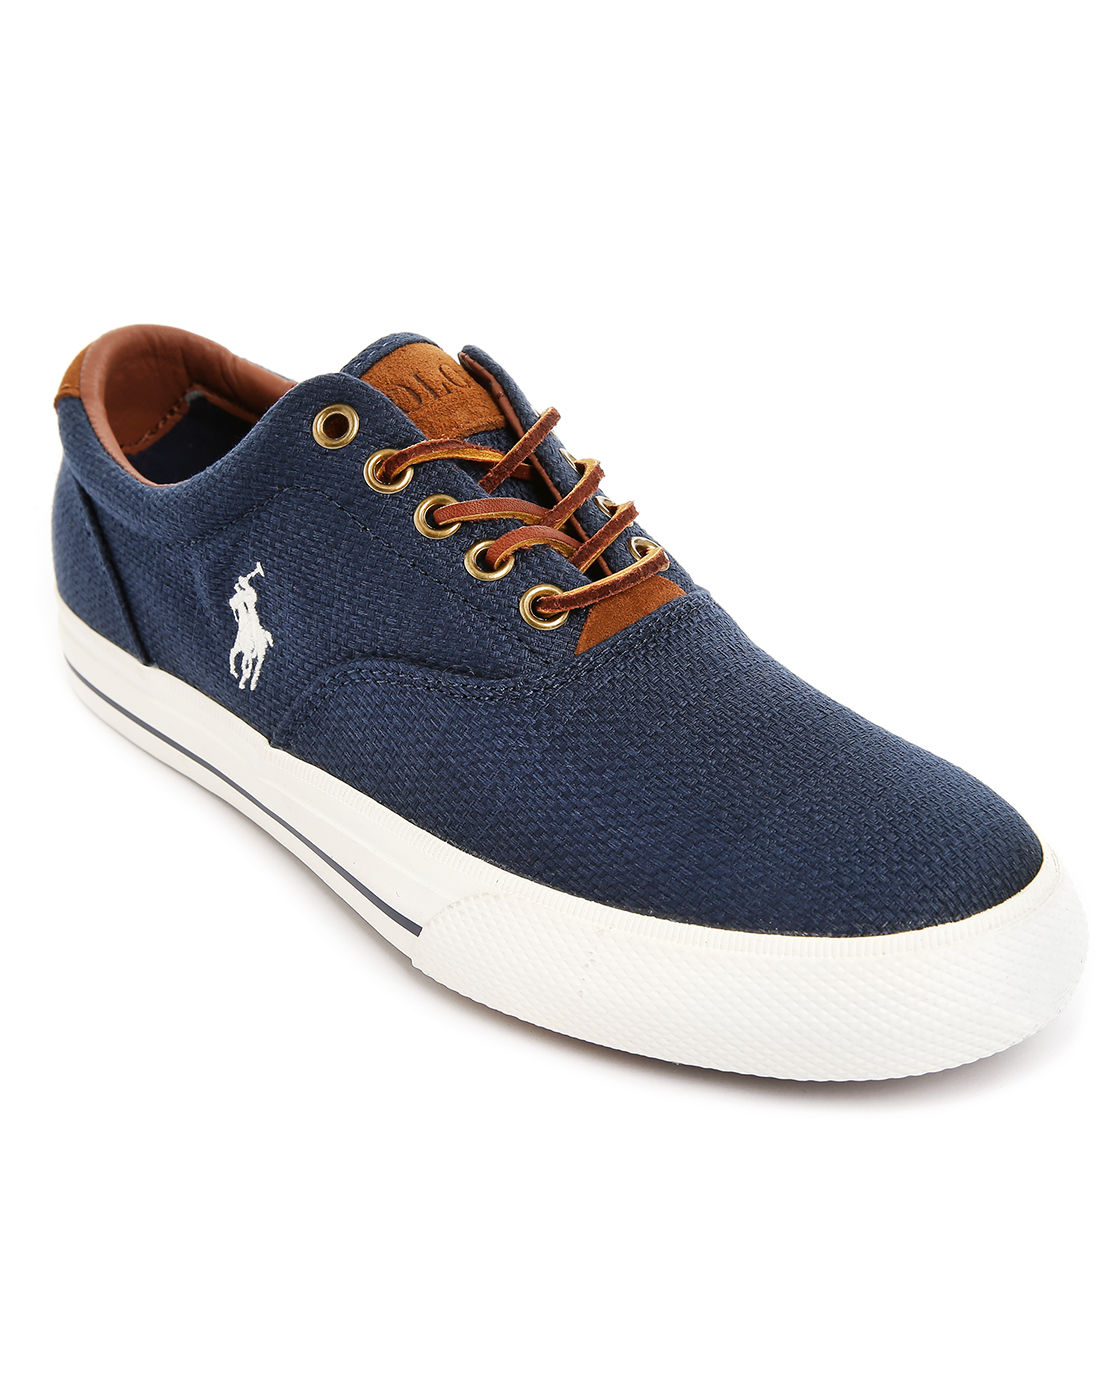 polo ralph lauren vaughn woven navy blue sneakers in blue for men. Black Bedroom Furniture Sets. Home Design Ideas